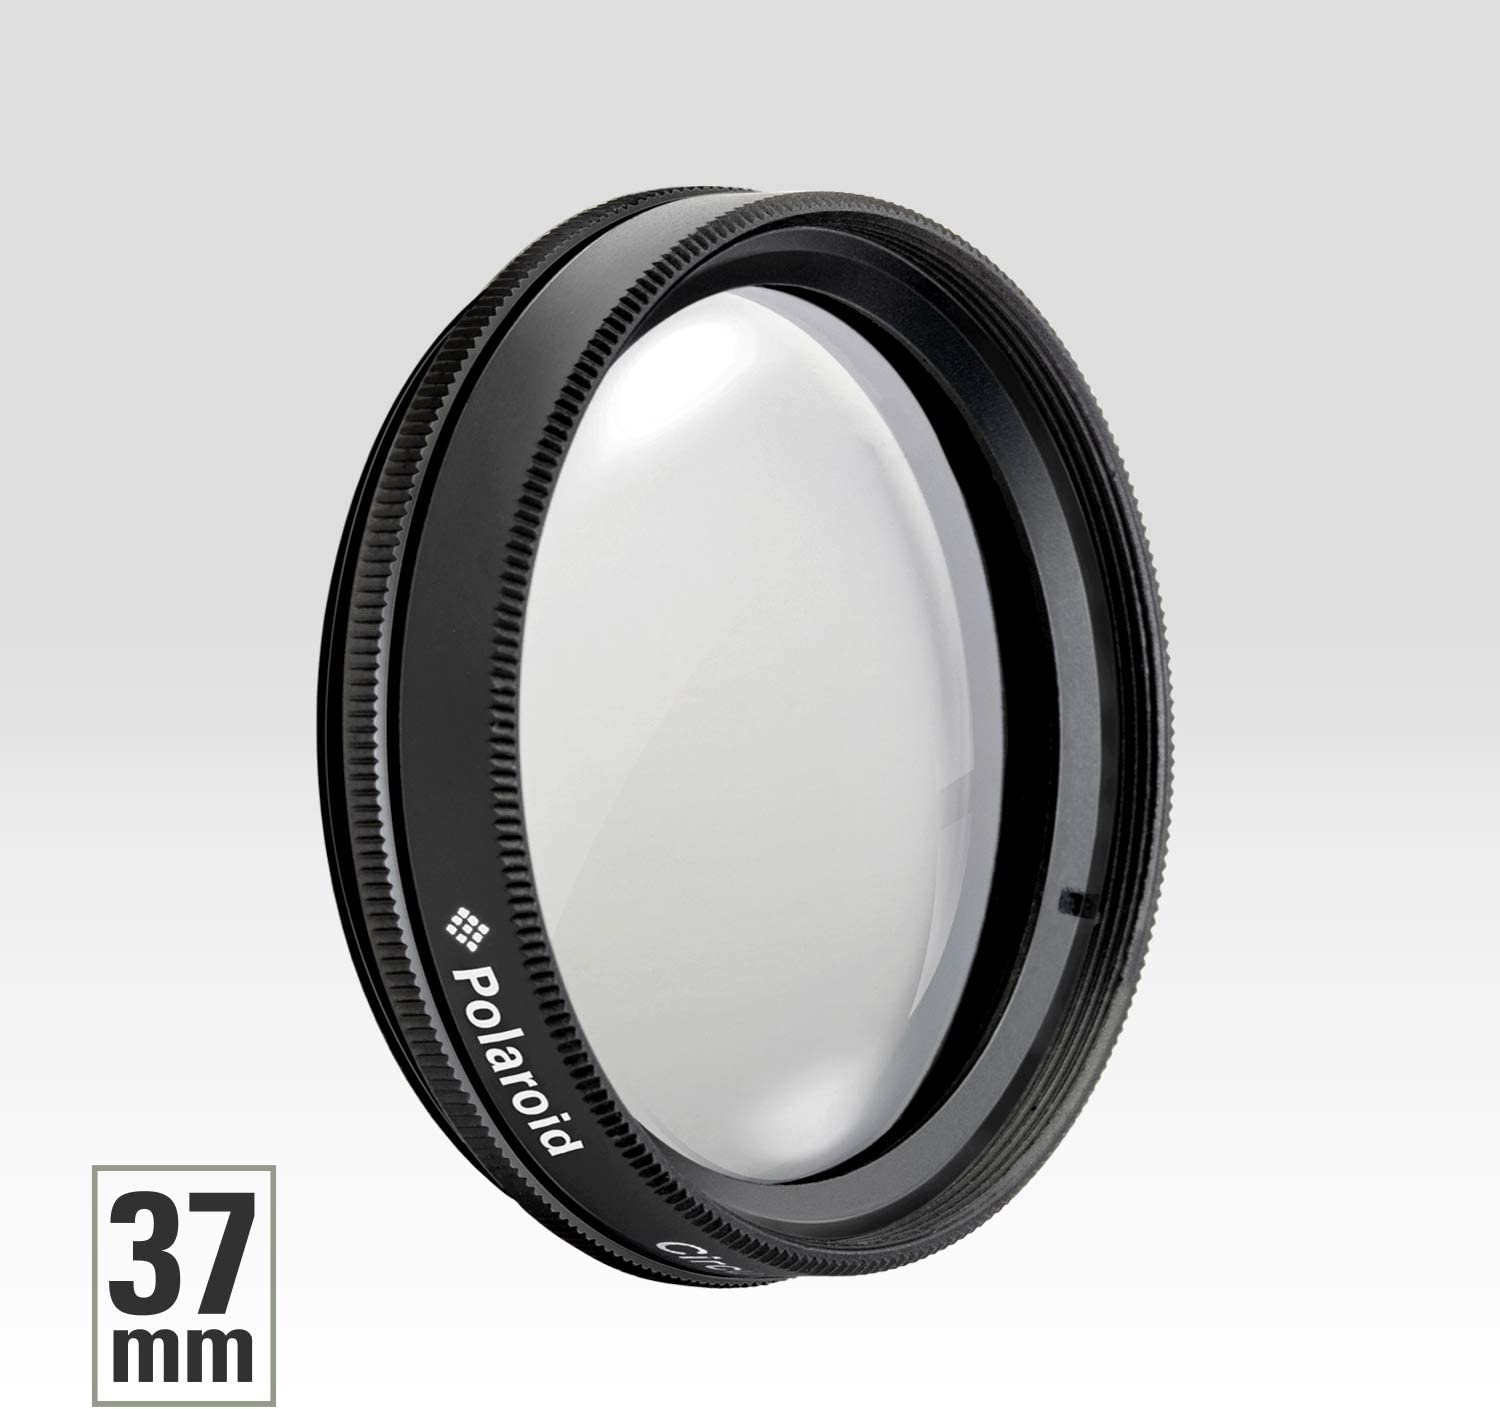 CPL Polaroid Optics 72mm Multi-Coated Circular Polarizer Filter Contrast /& Reflection Control For /'On Location/' Color Saturation Compatible w// All Popular Camera Lens Models